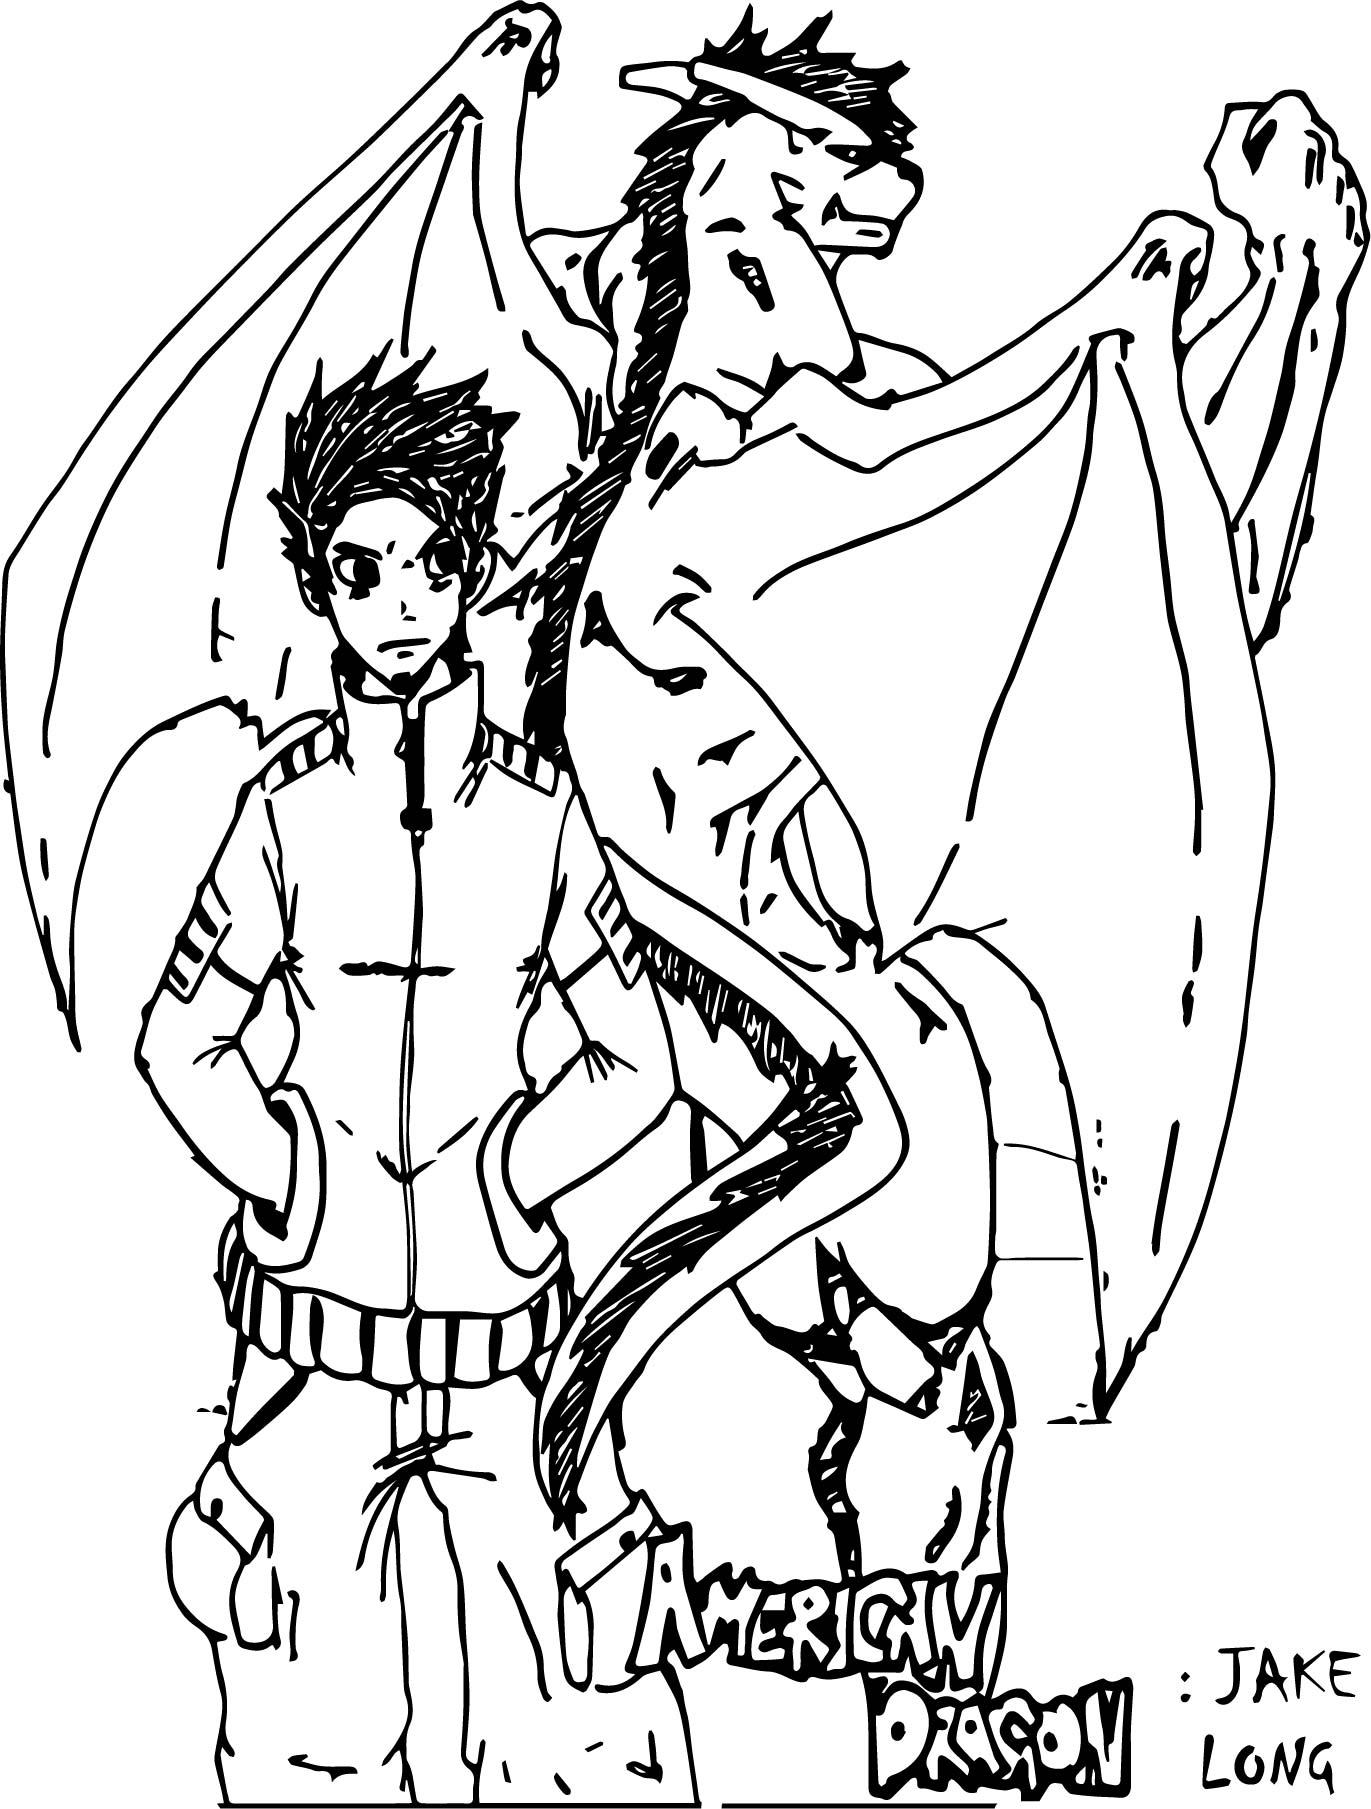 American Dragon Jake Long Sketch Coloring Page